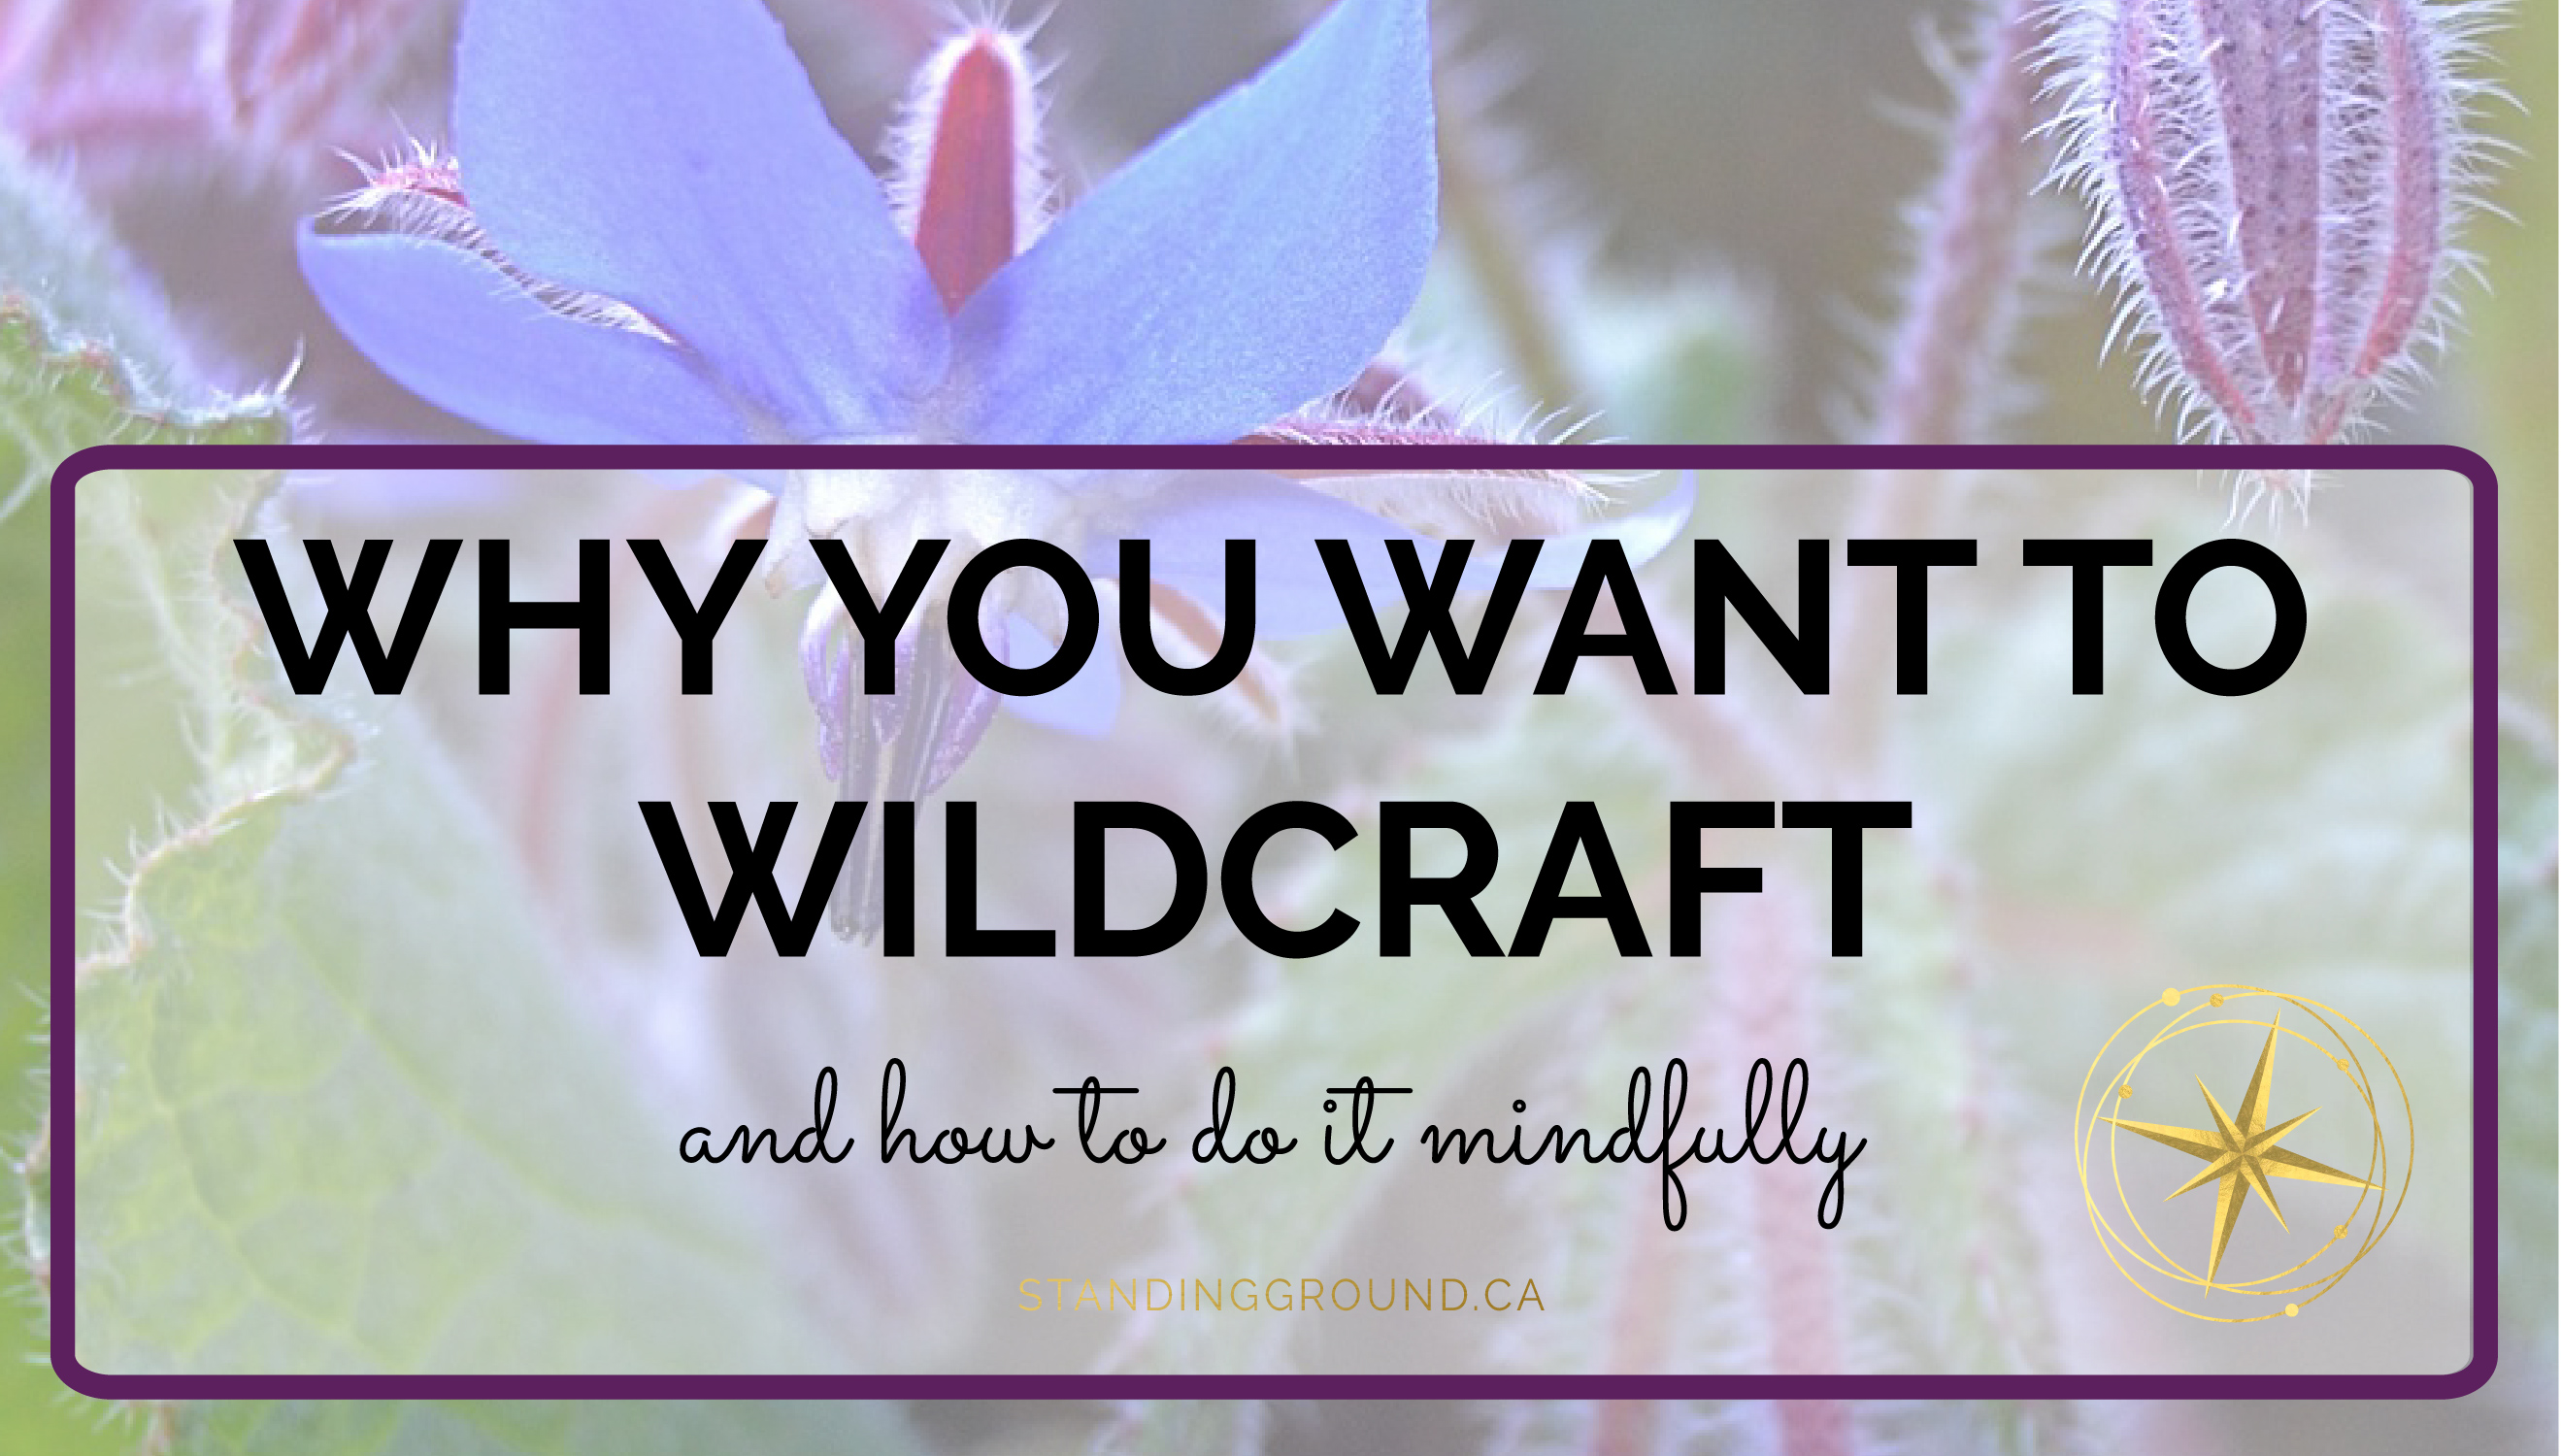 Wildcrafting title image